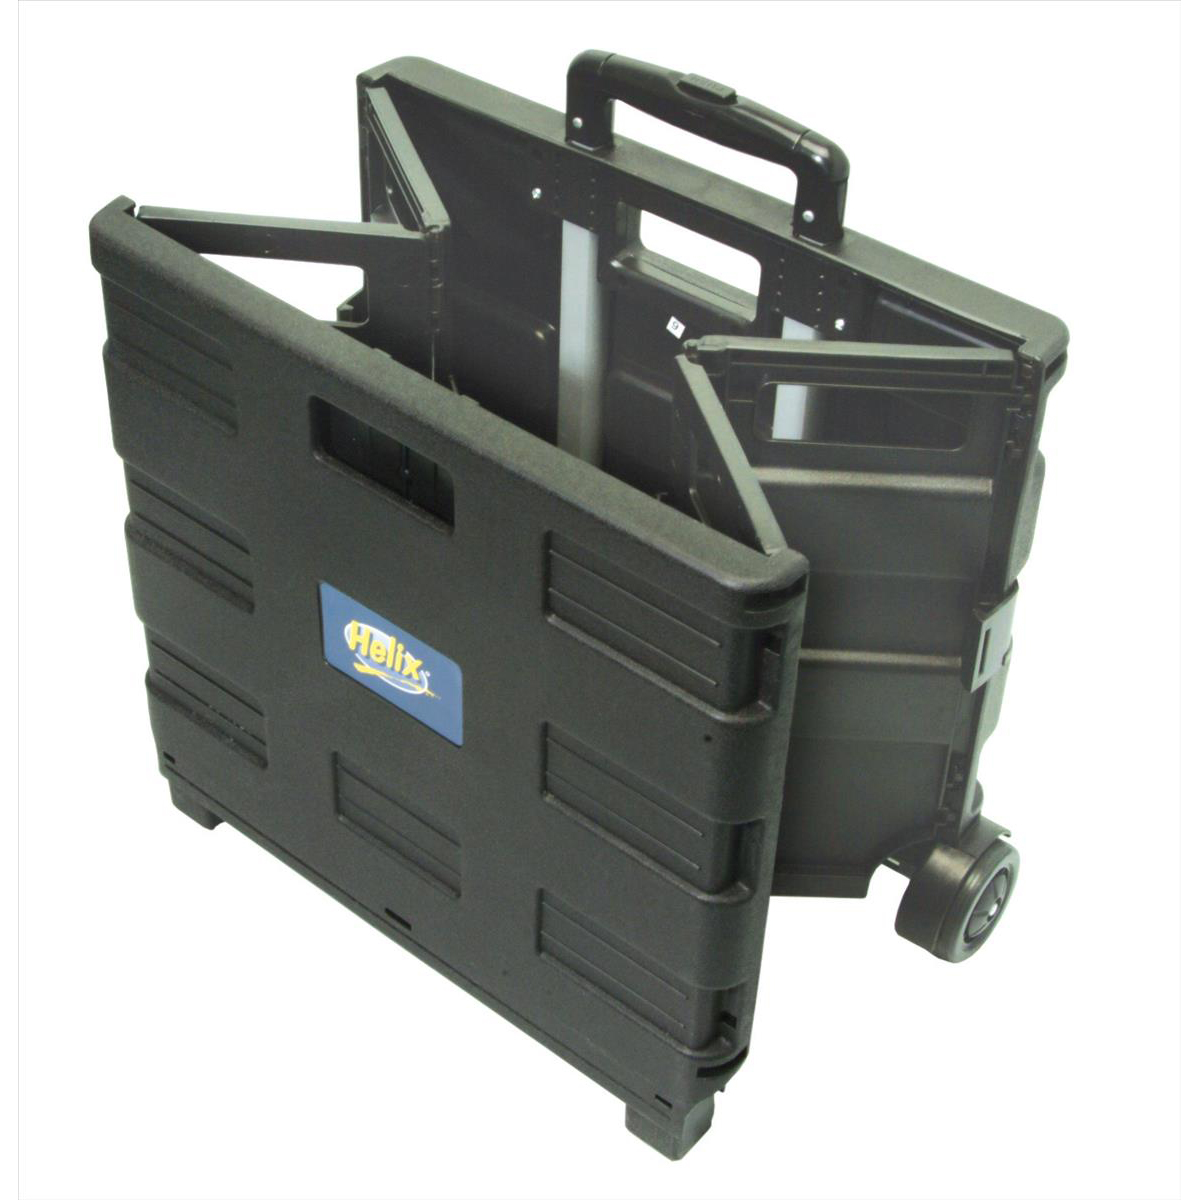 Trolleys or accessories Crate Trolley Foldable Capacity 35kg/44 litres 430x380x1000mm Black